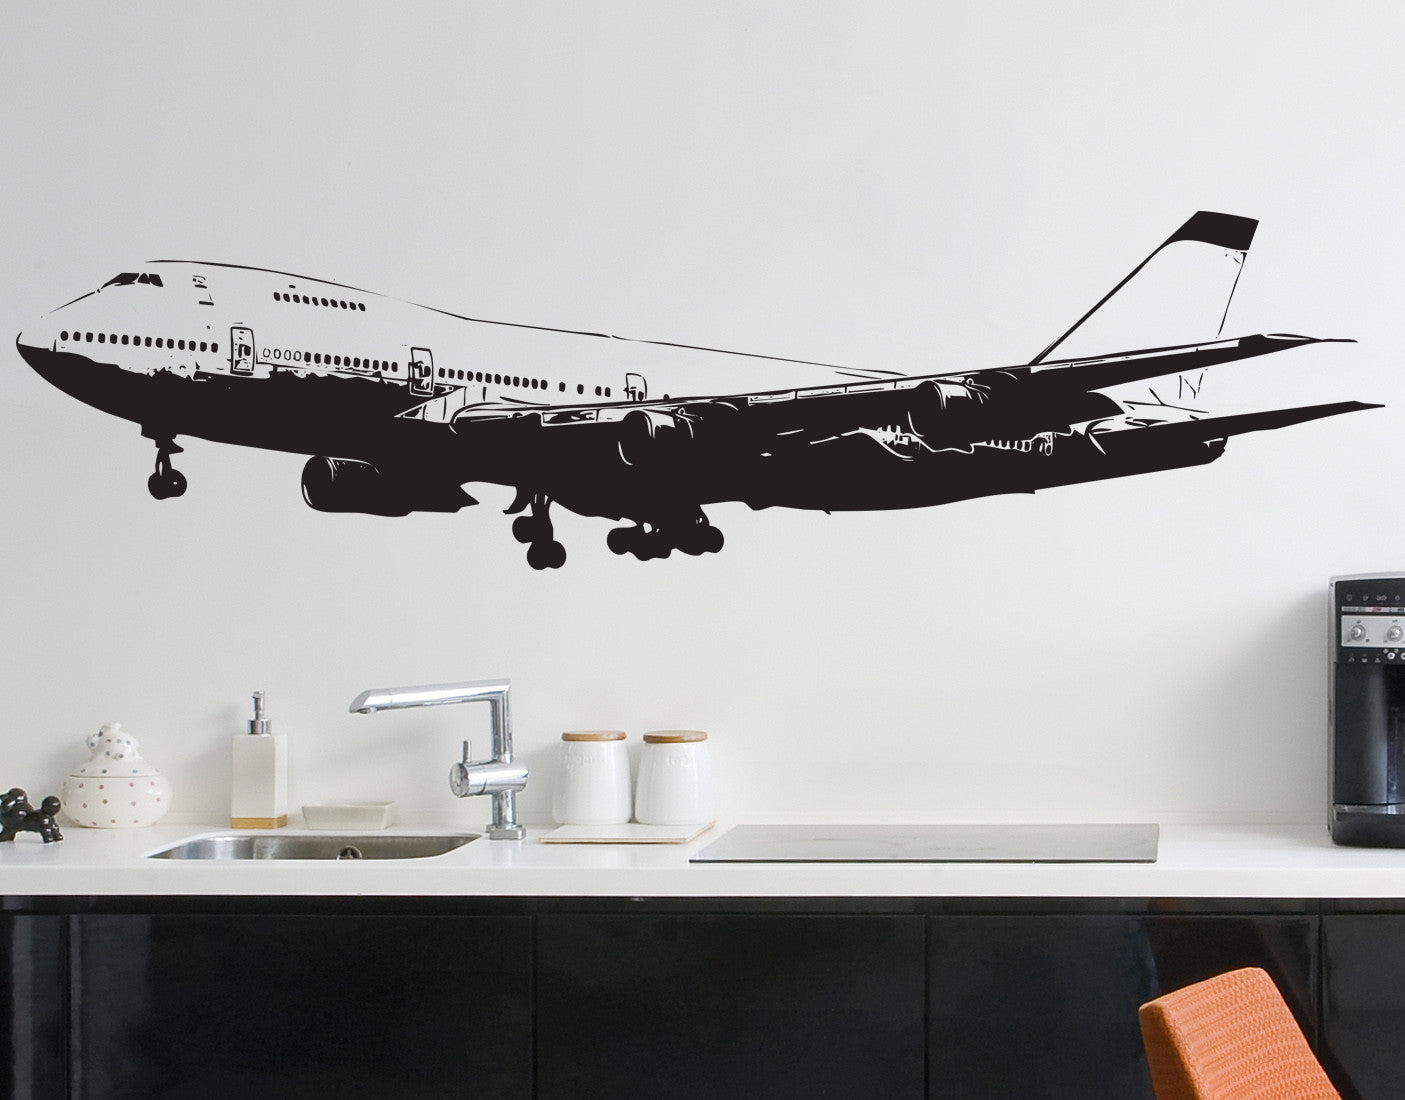 747 airplane vinyl wall decal sticker 6031 for Aircraft decoration